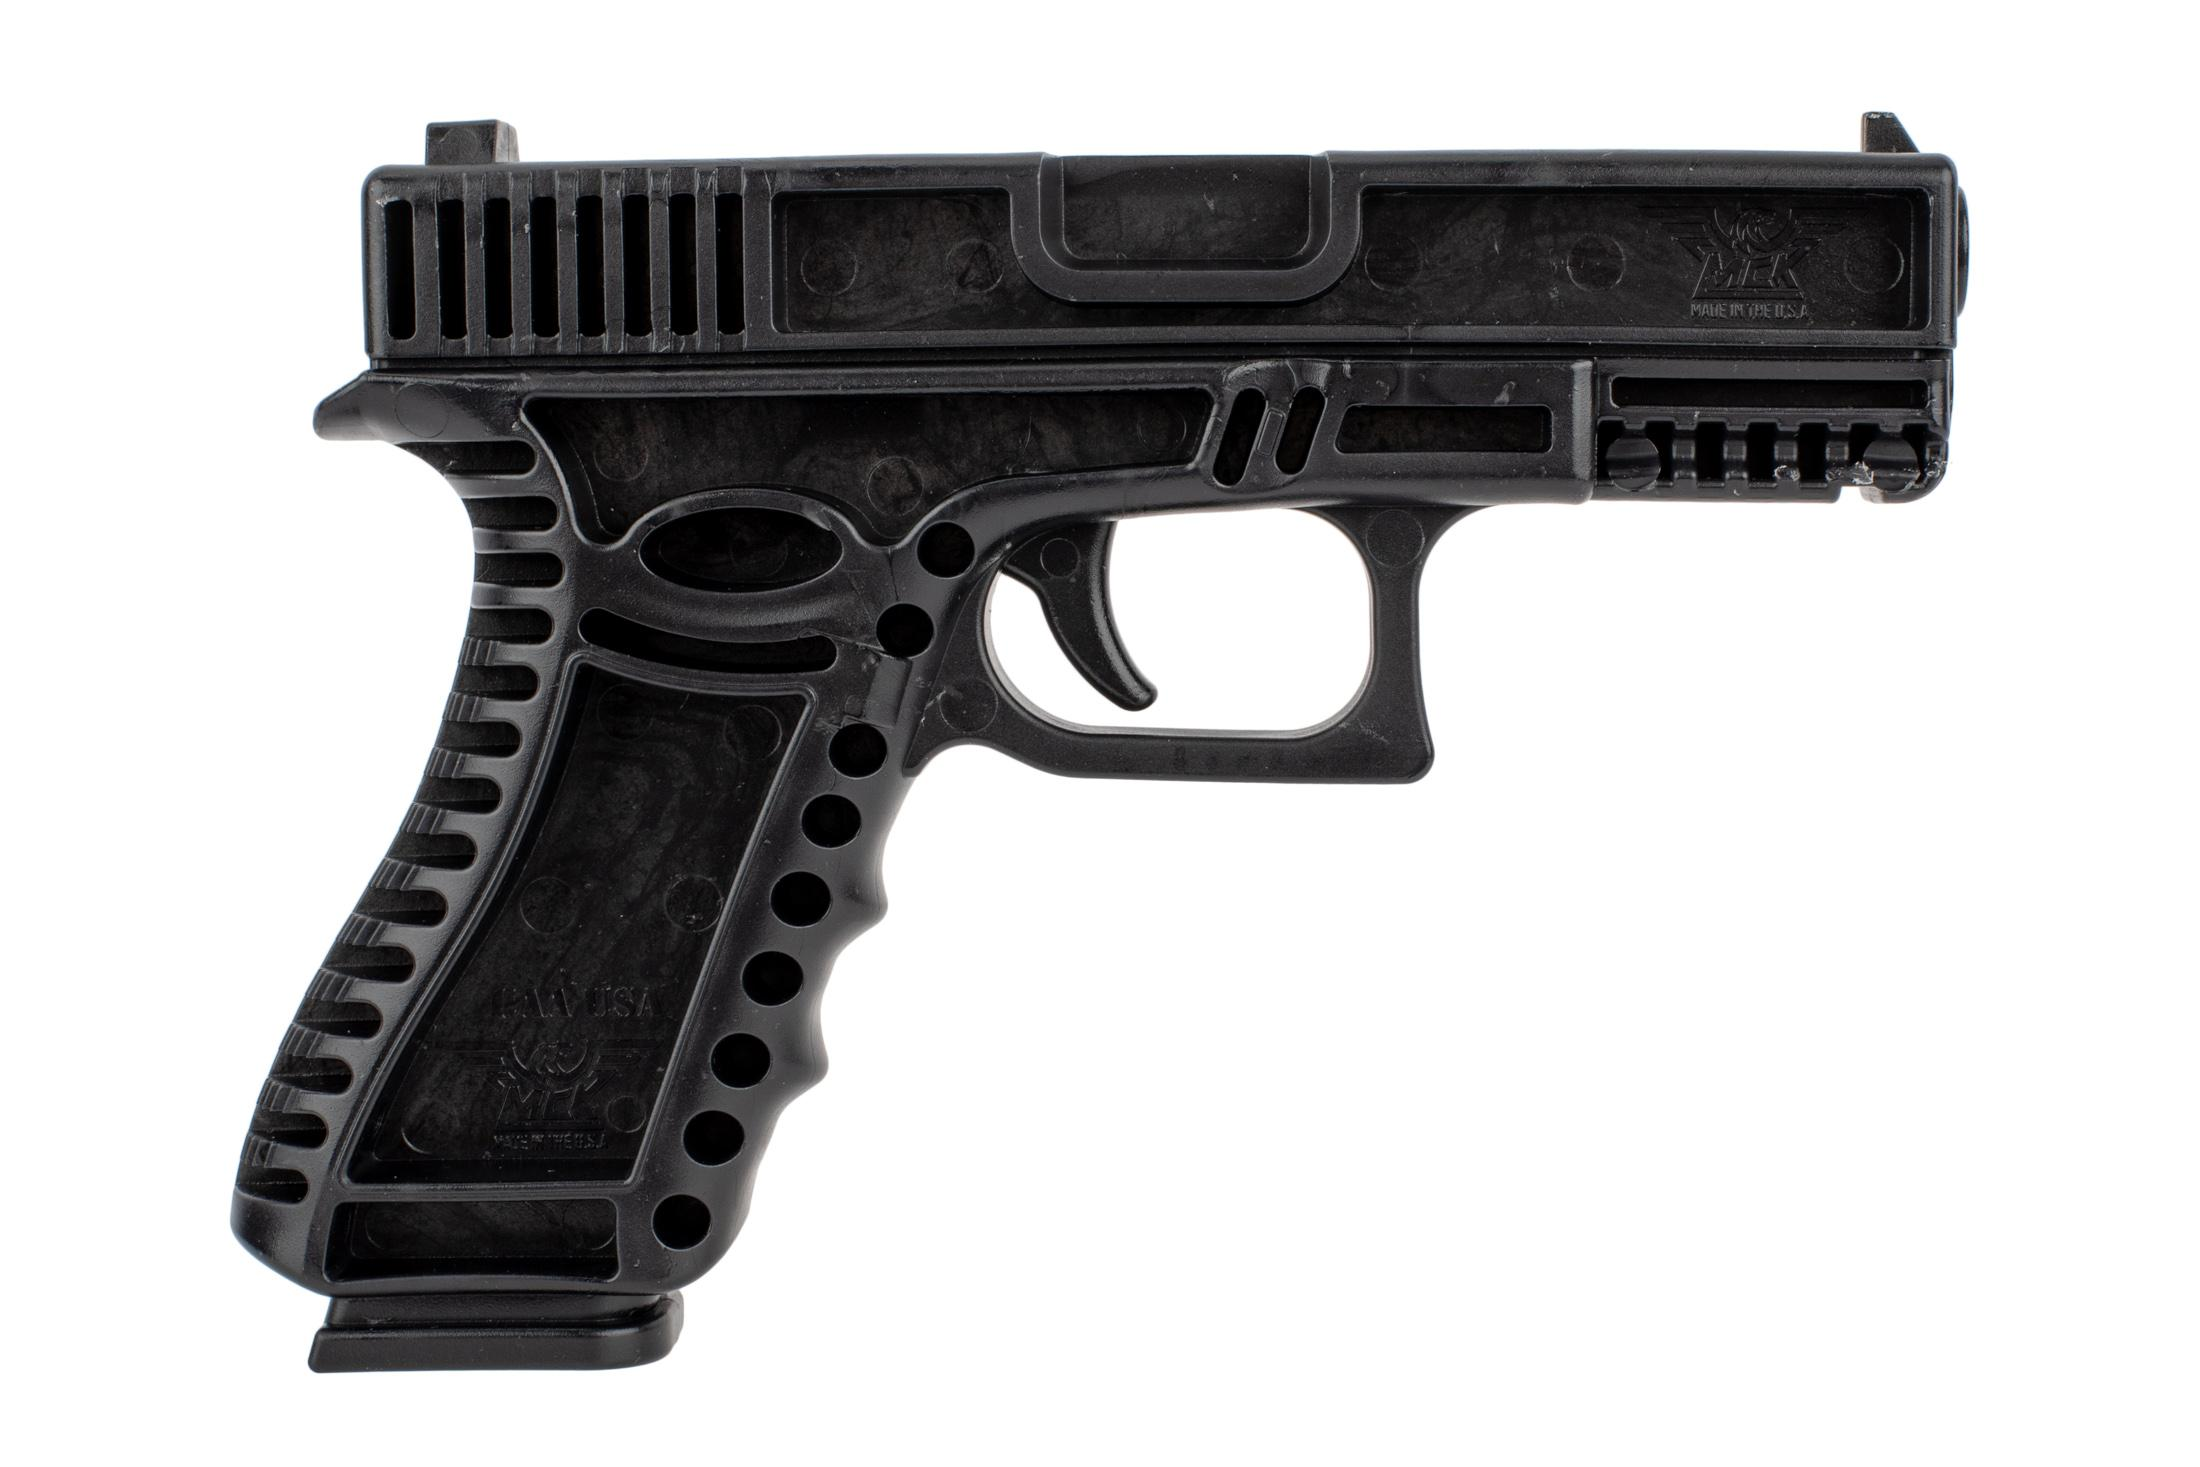 CAA black training handgun is modeled after the highly popular Glock G19 compact handgun for familiar ergonomics.